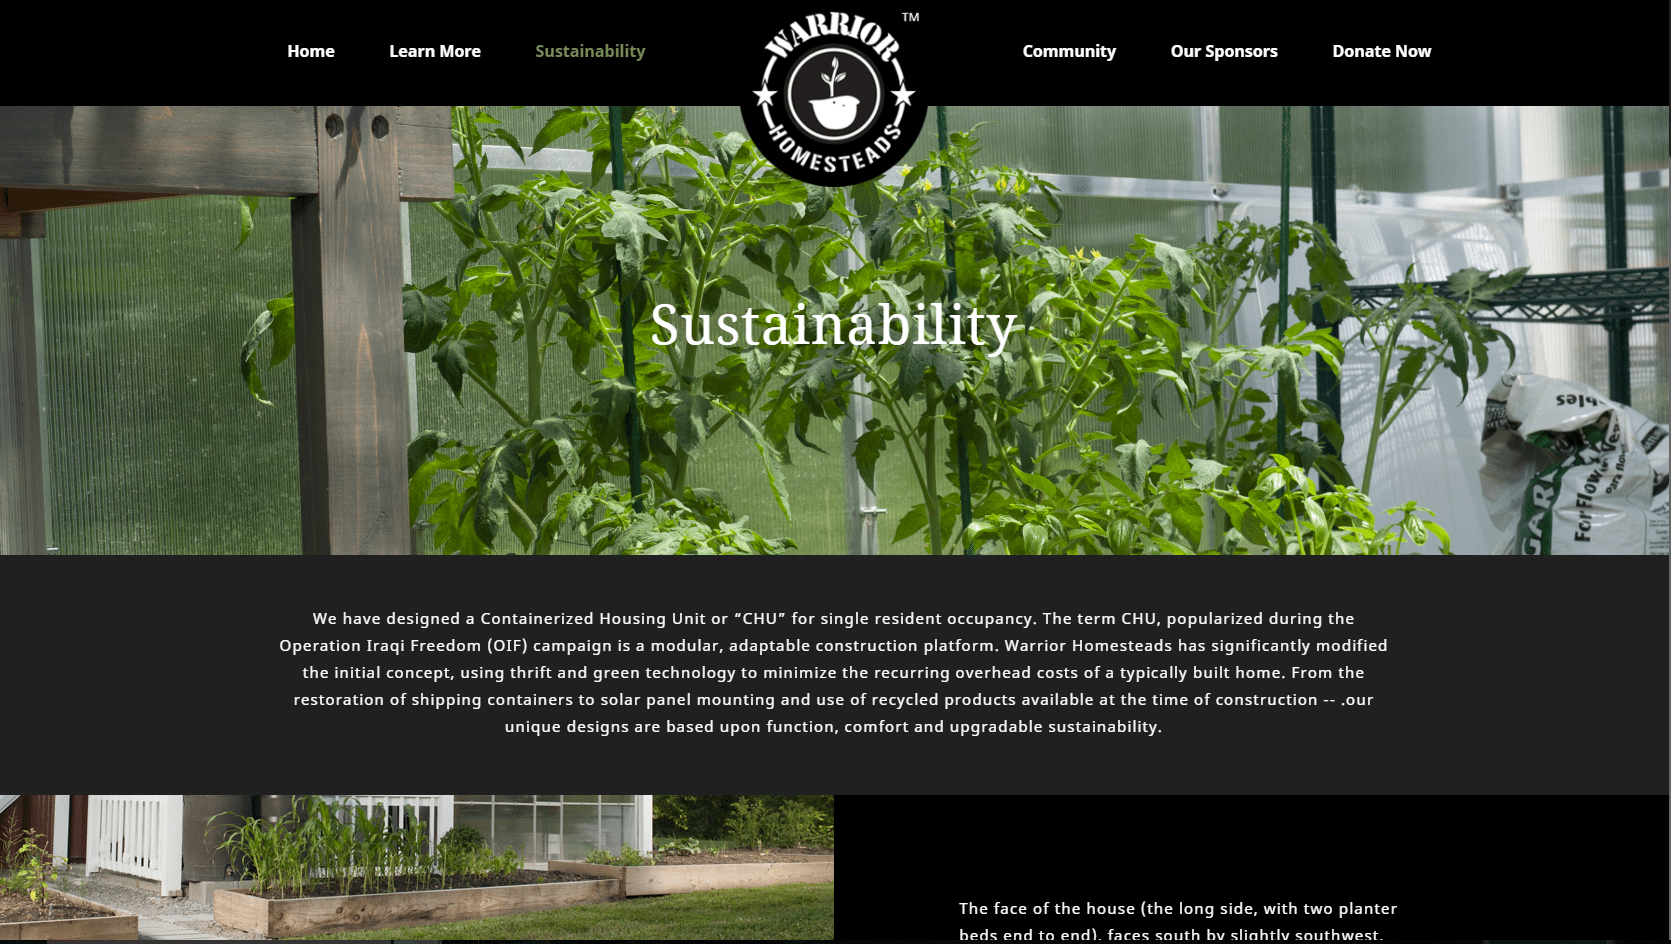 Warrior Homesteads' sustainability page